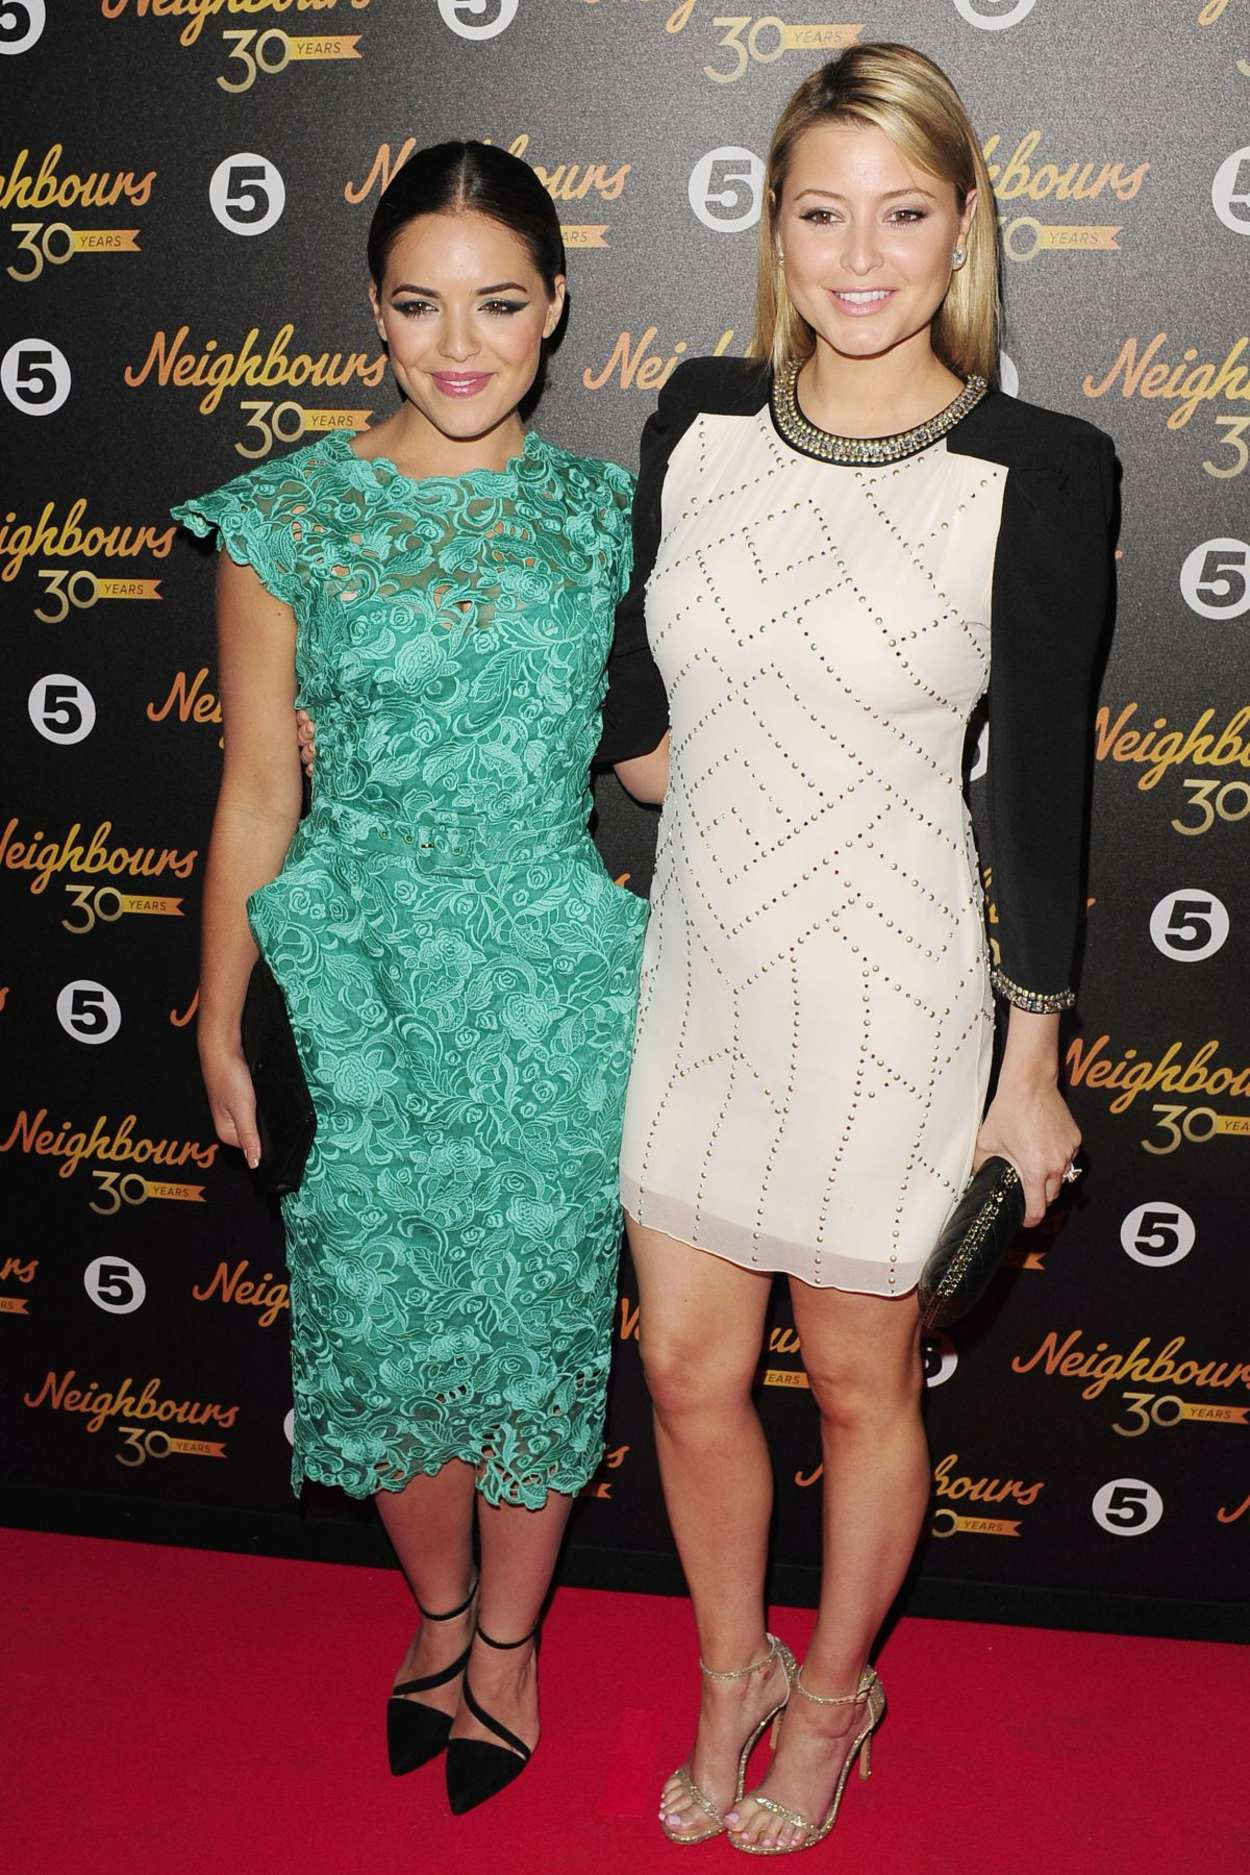 Holly and Olympia Valance - Neighbours 30th Anniversary Party in London